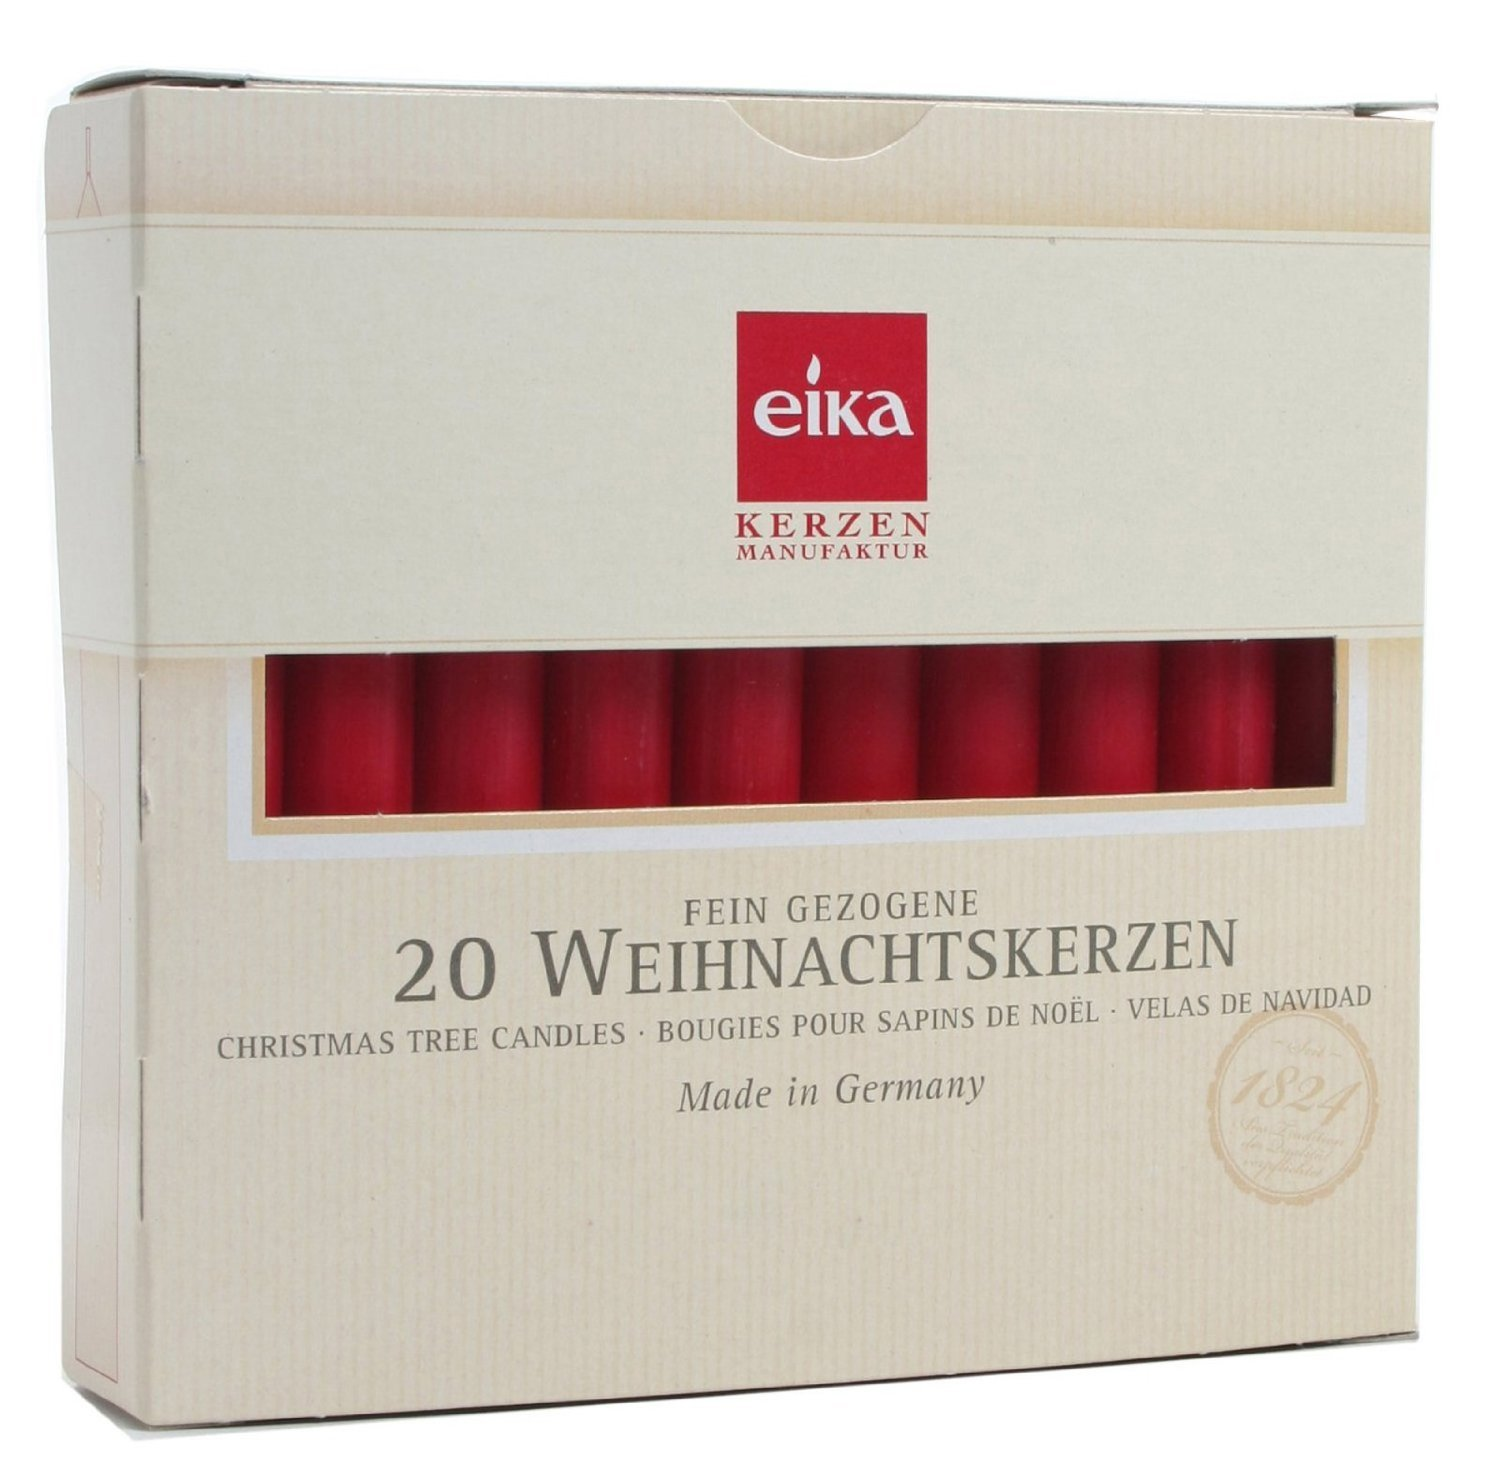 Christmas Tree Candle Set Eika 20 Pieces - Made in Germany 10.5 Cms High Red